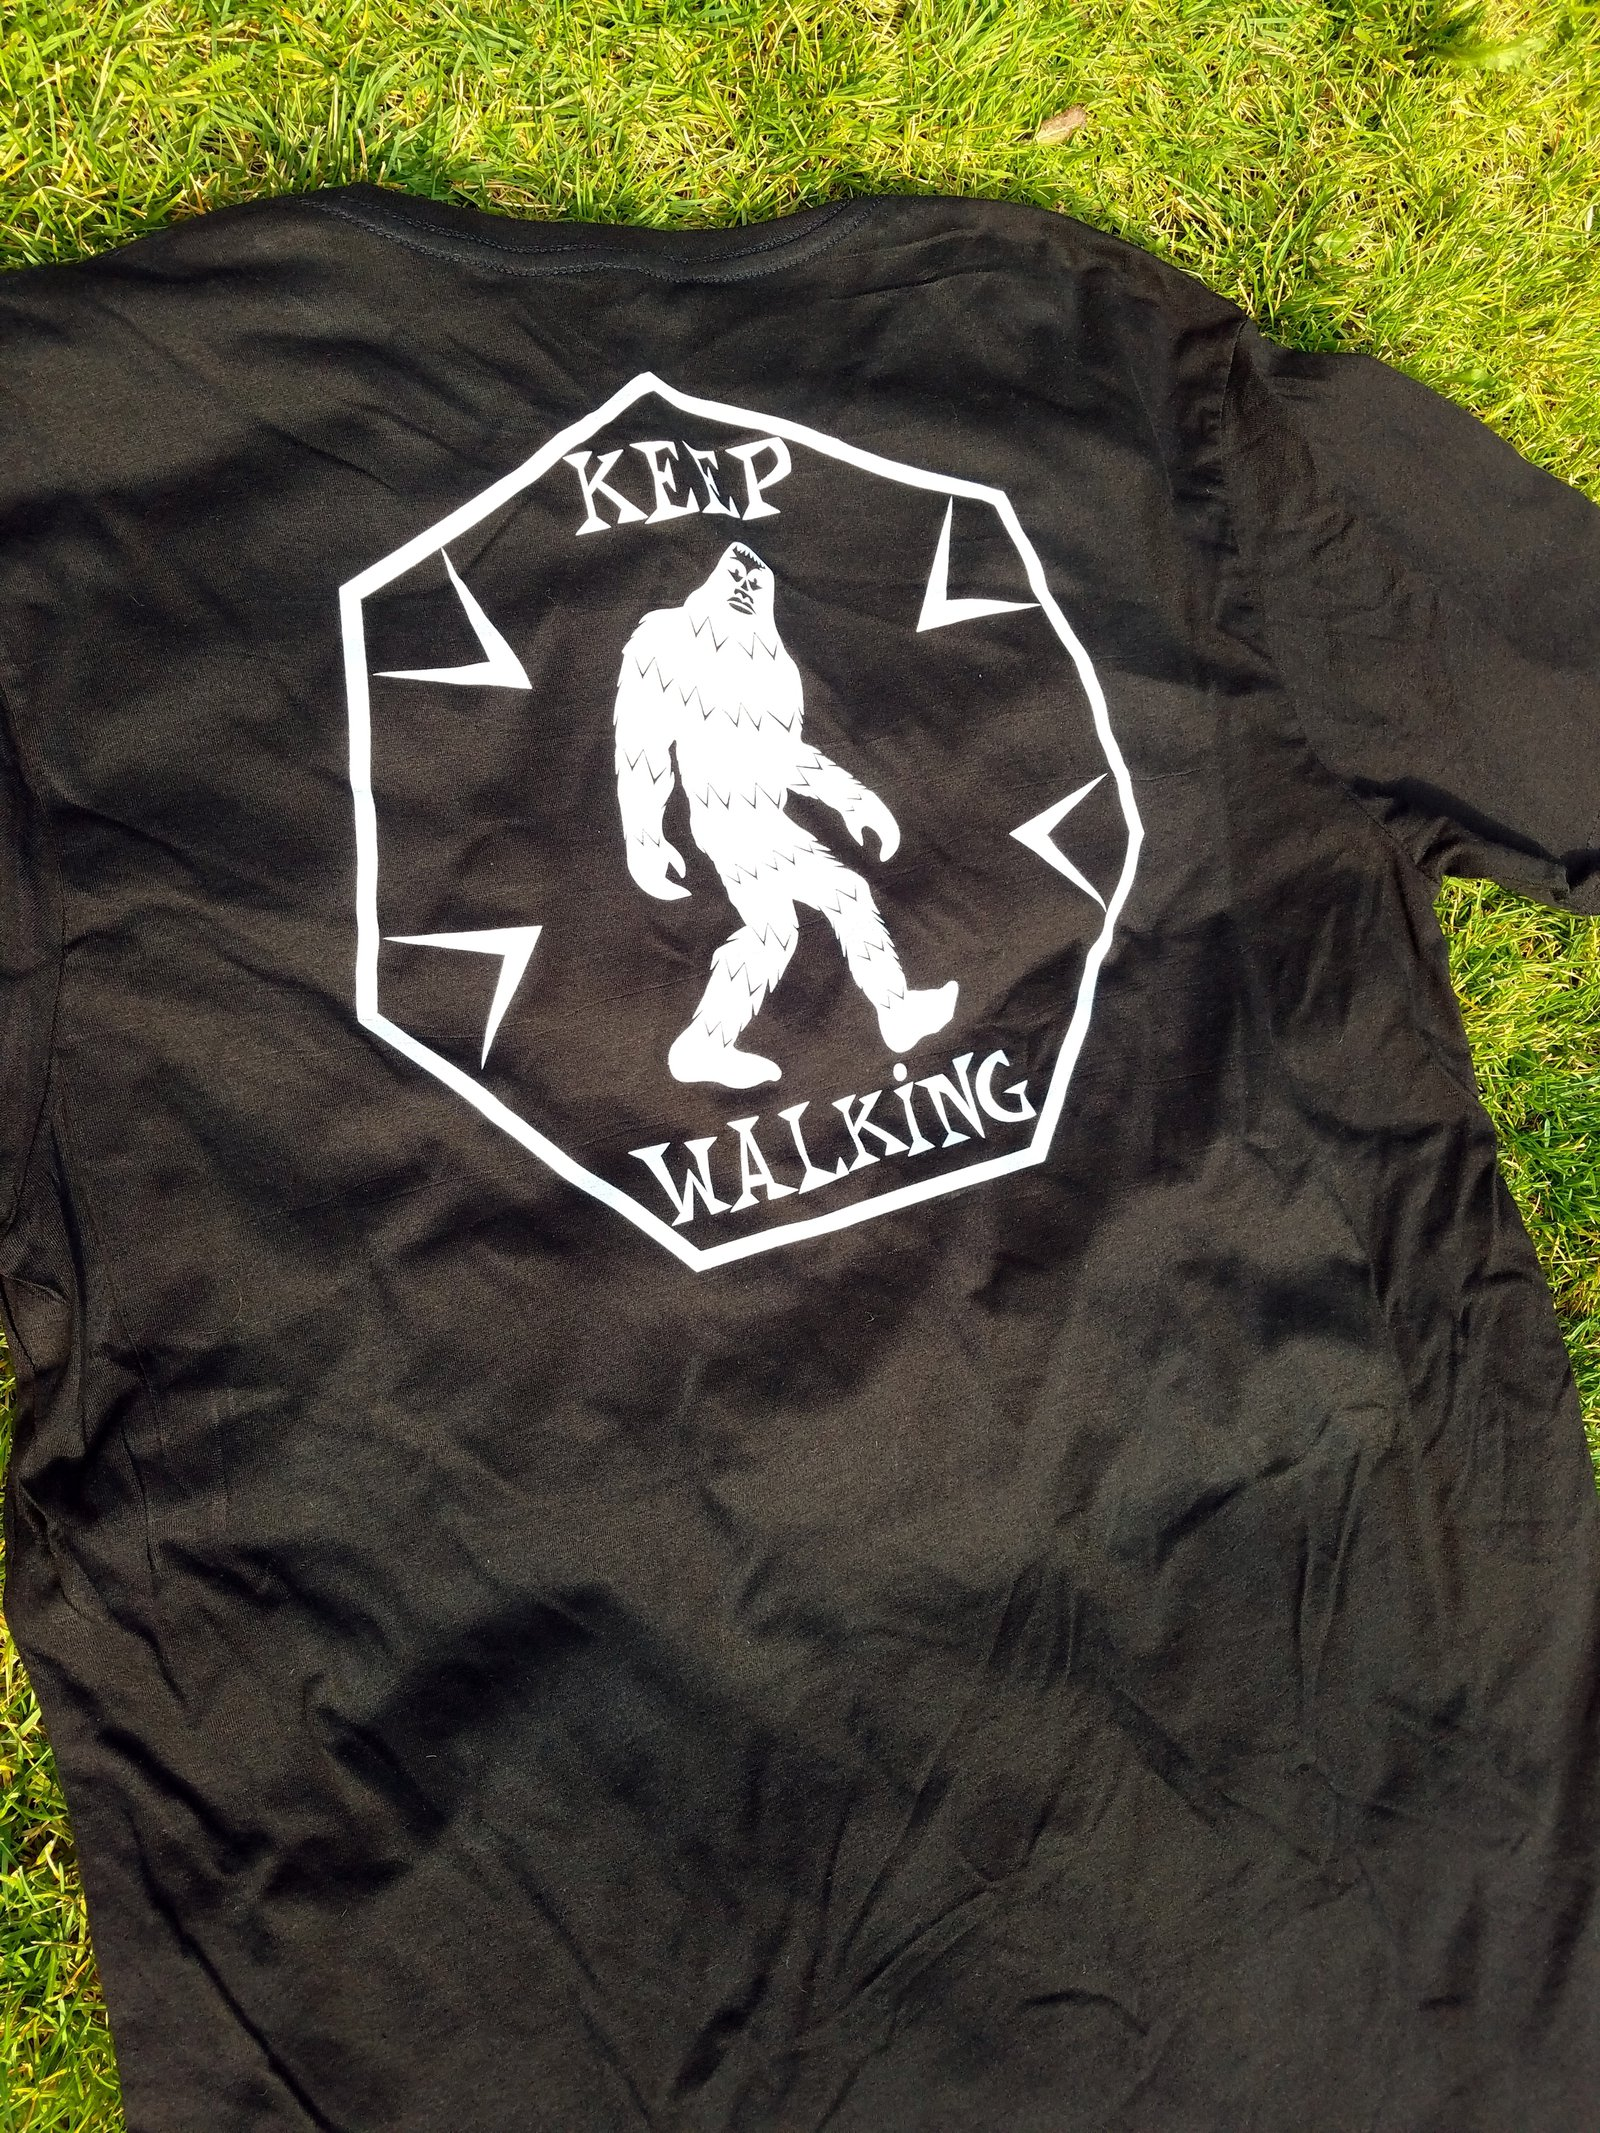 Keep Walking tee